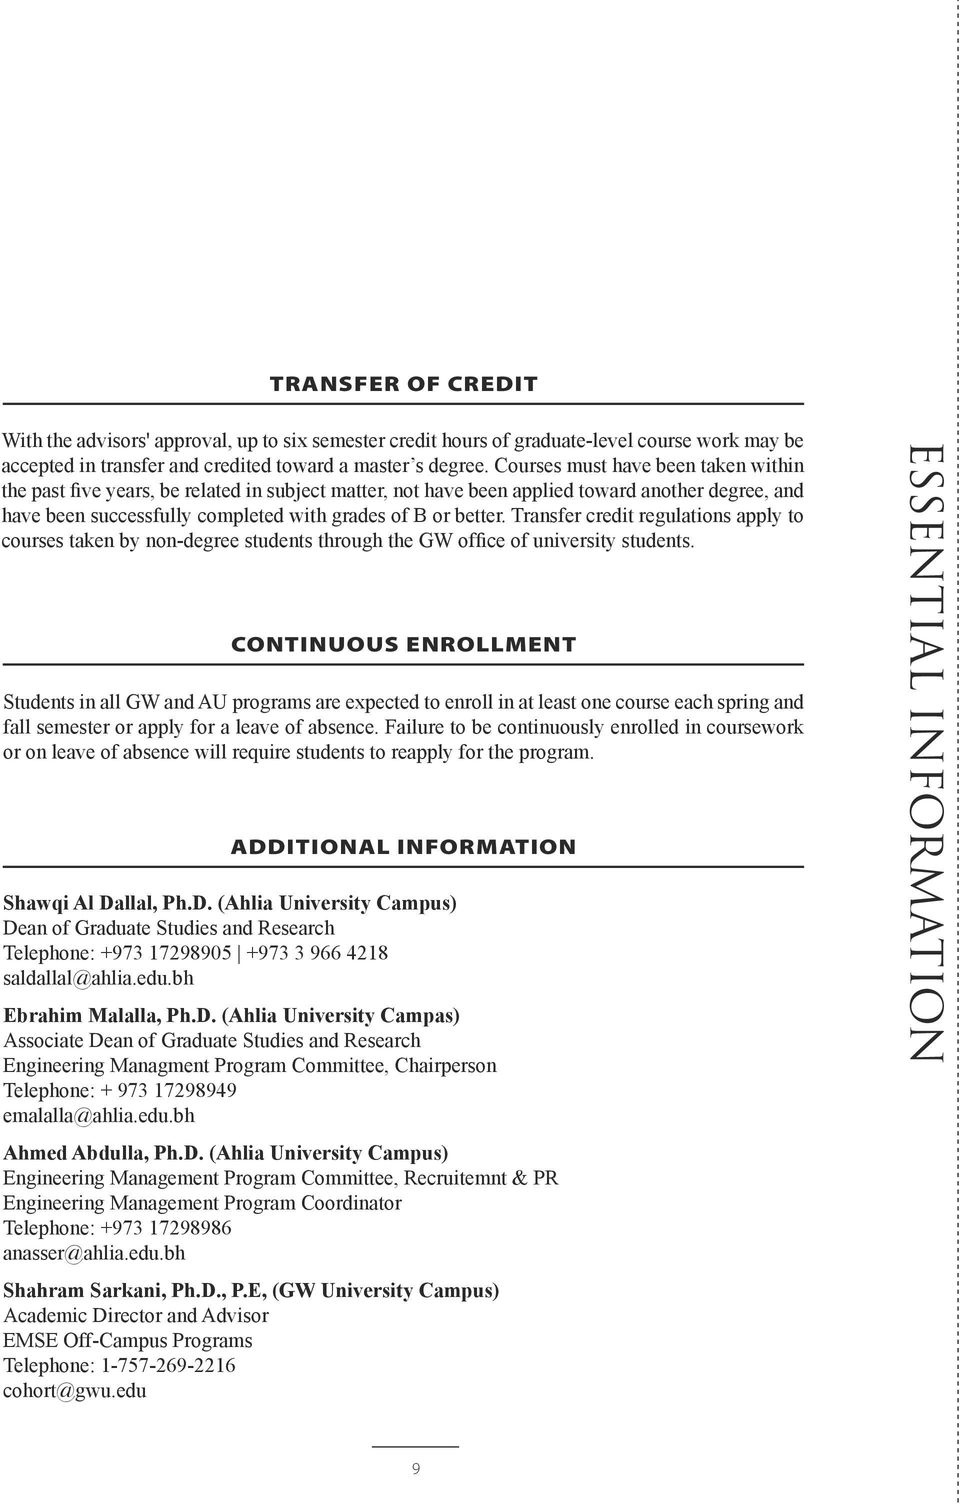 Transfer credit regulations apply to courses taken by non-degree students through the GW office of university students.